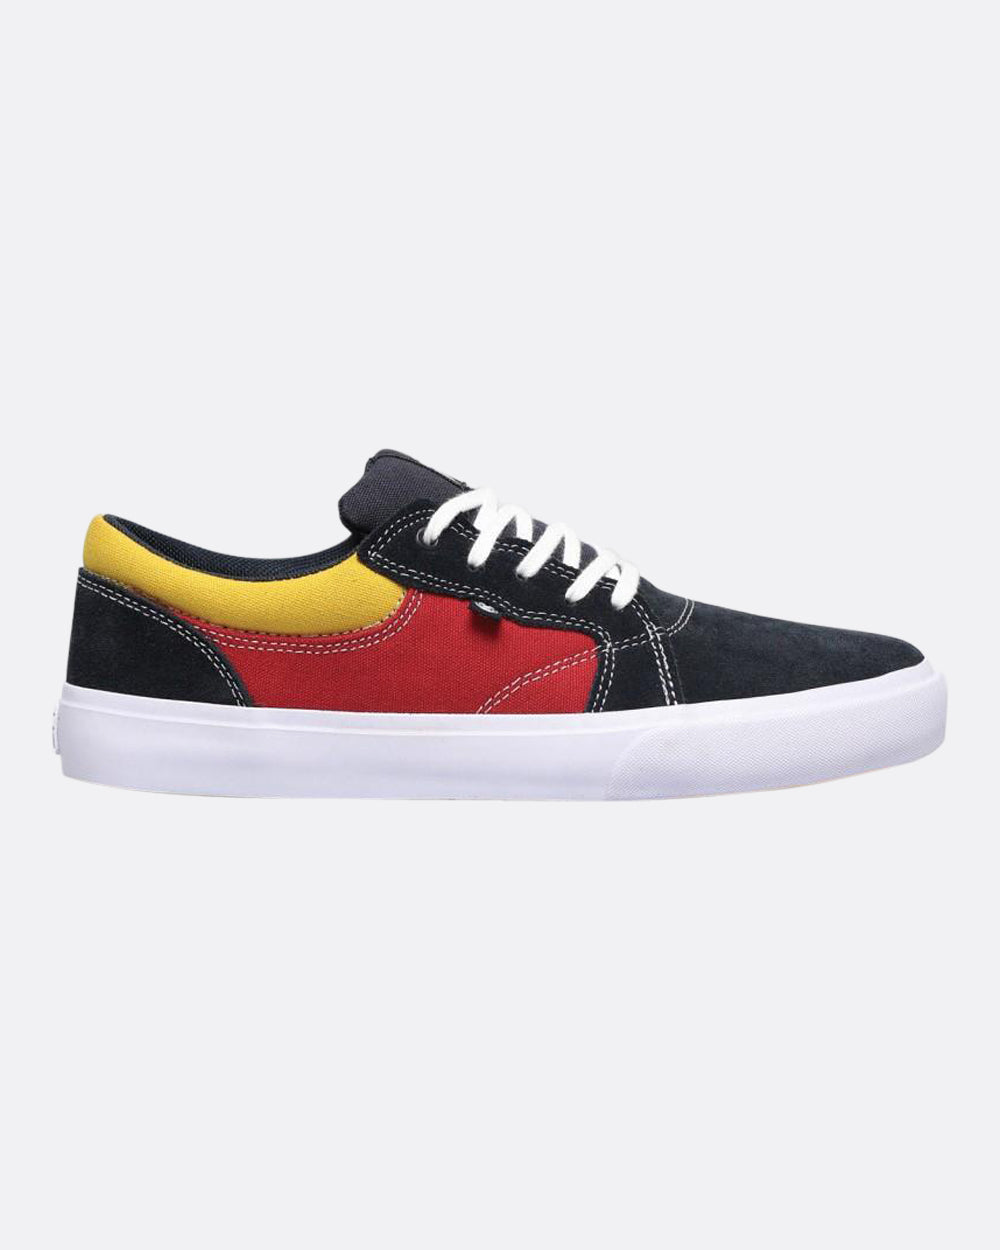 Wasso Skate Shoes